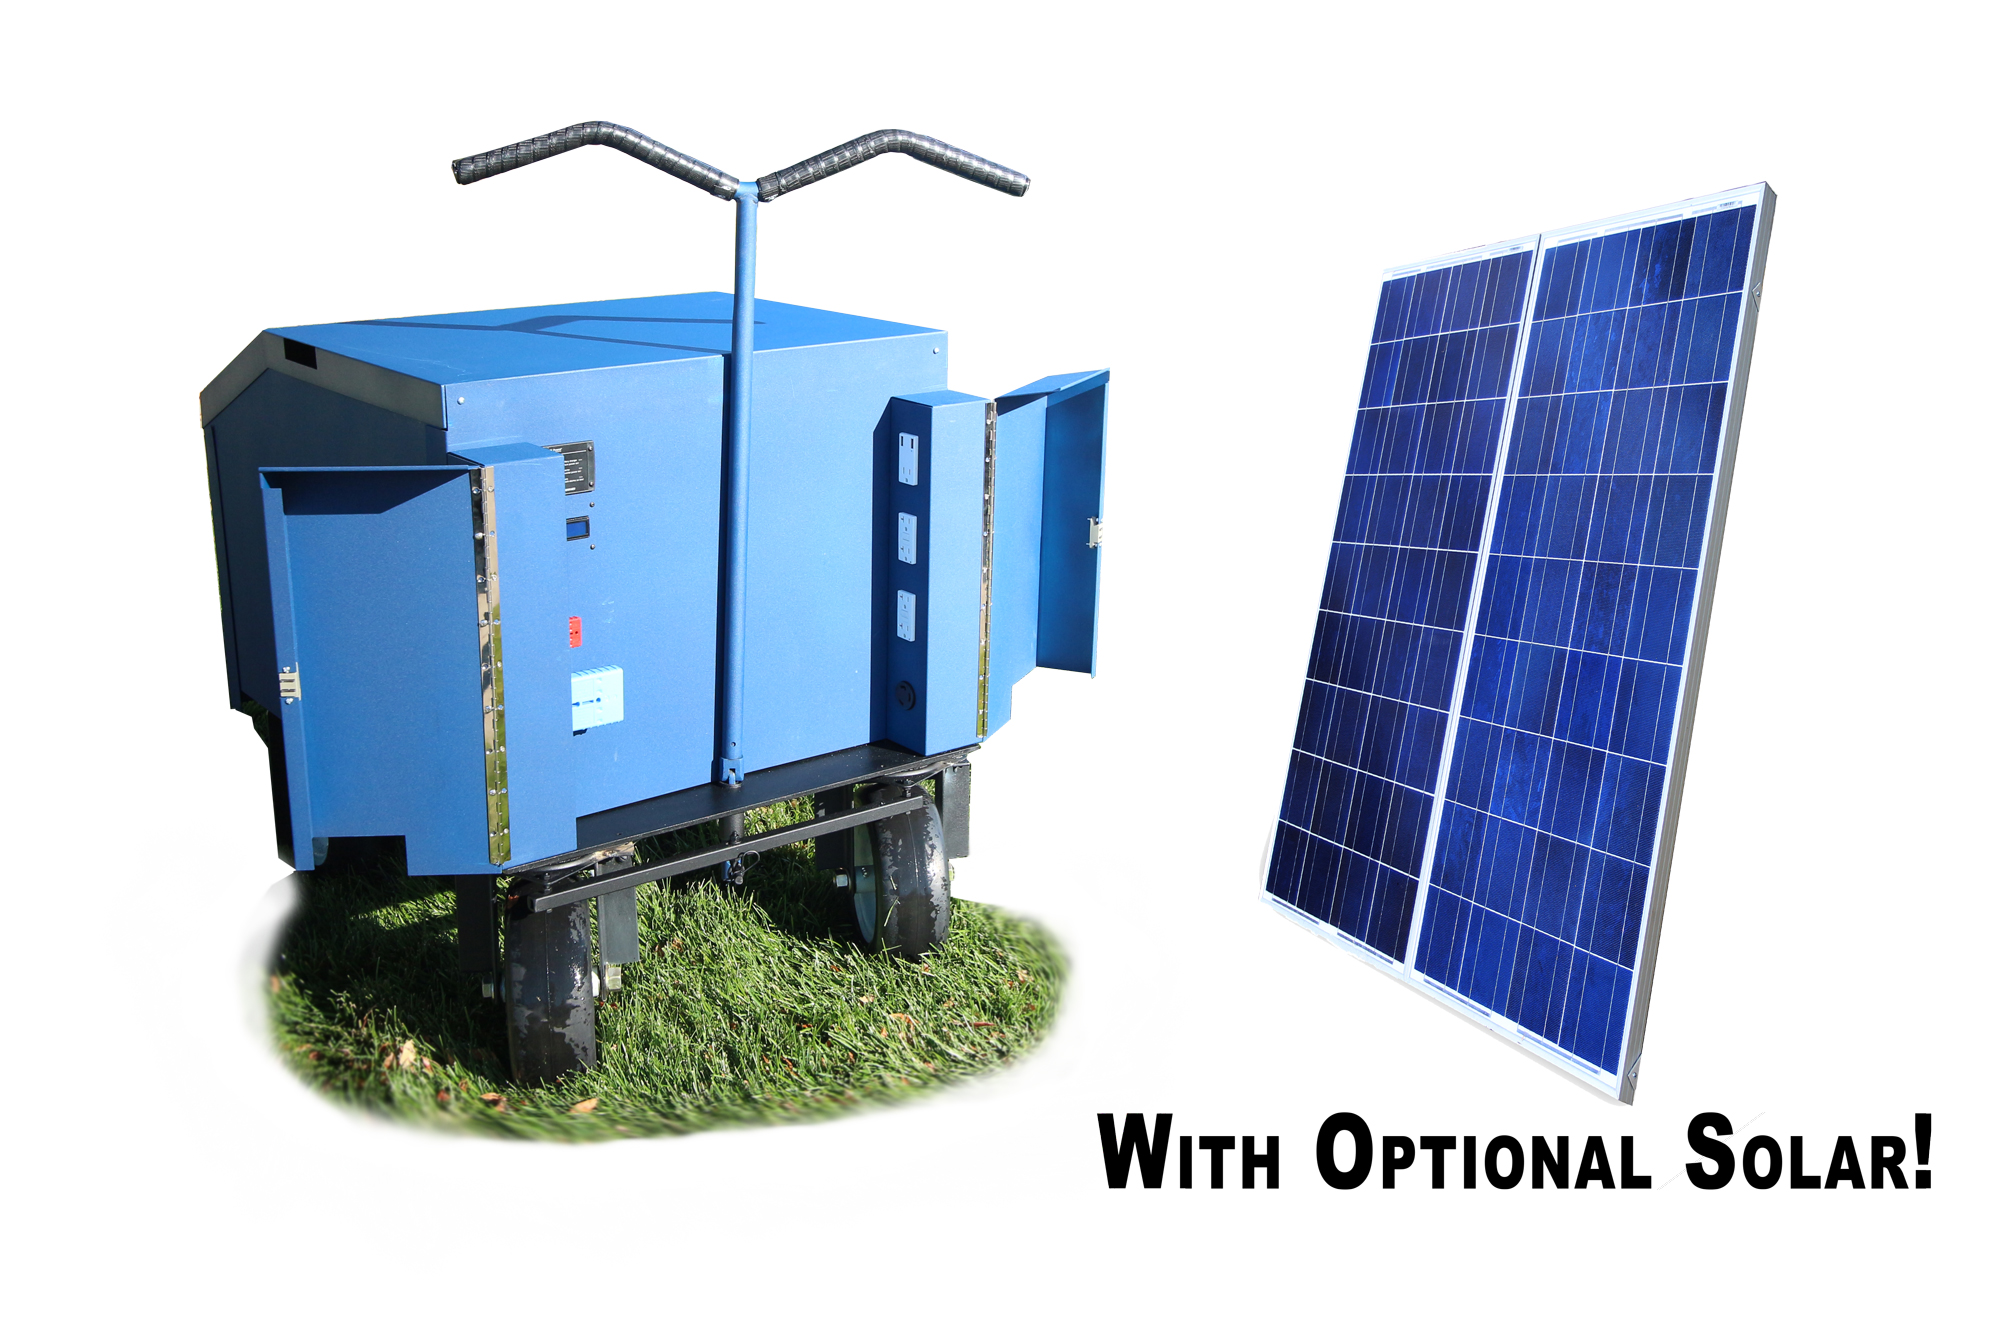 Aims Power To Unveil Green Energy Inverter Generator At Emex